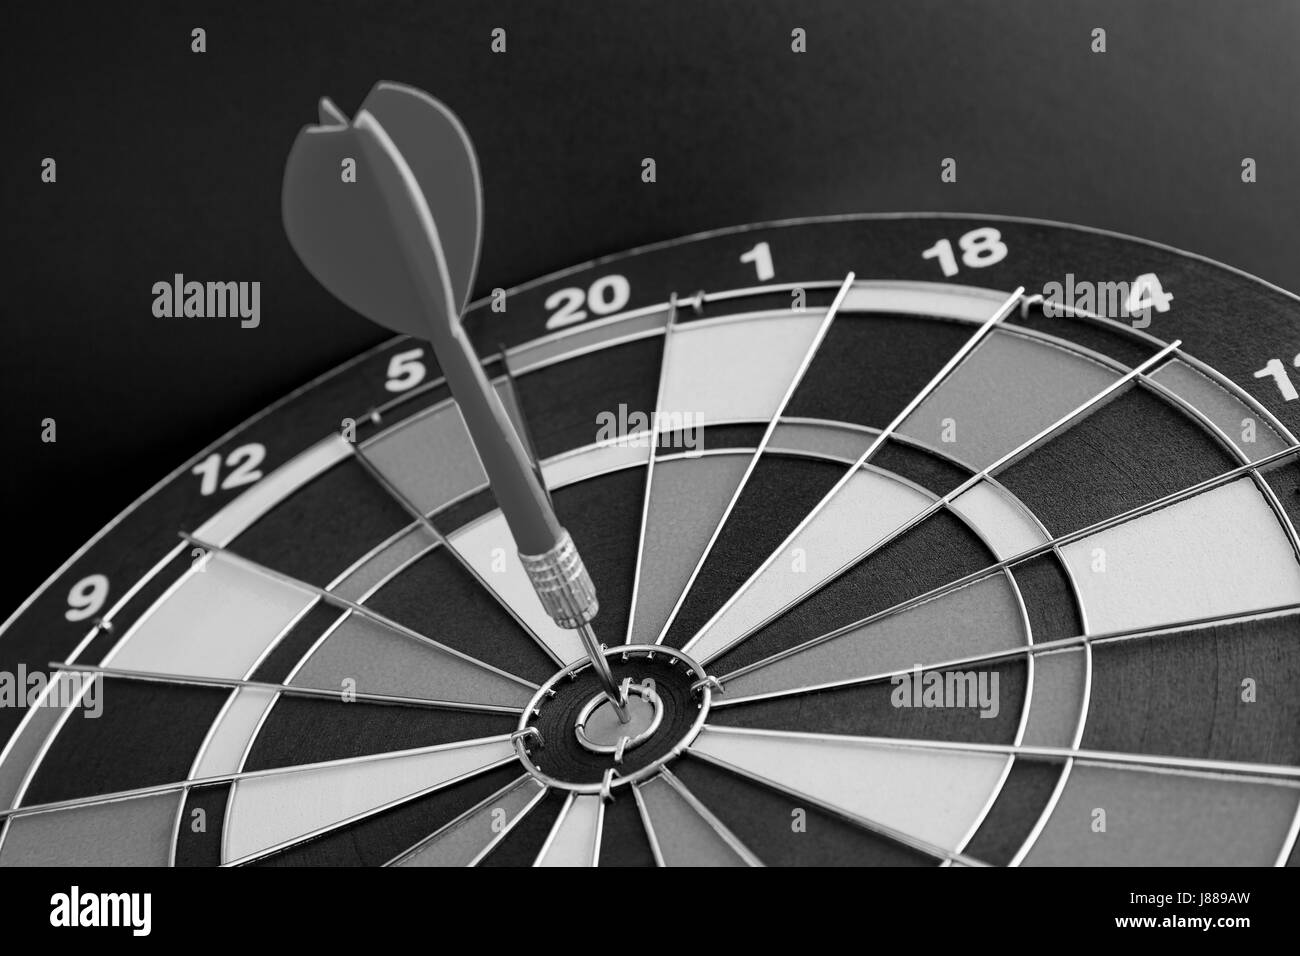 Dart arrow hitting in the target center of dartboard (Black And White) - Stock Image